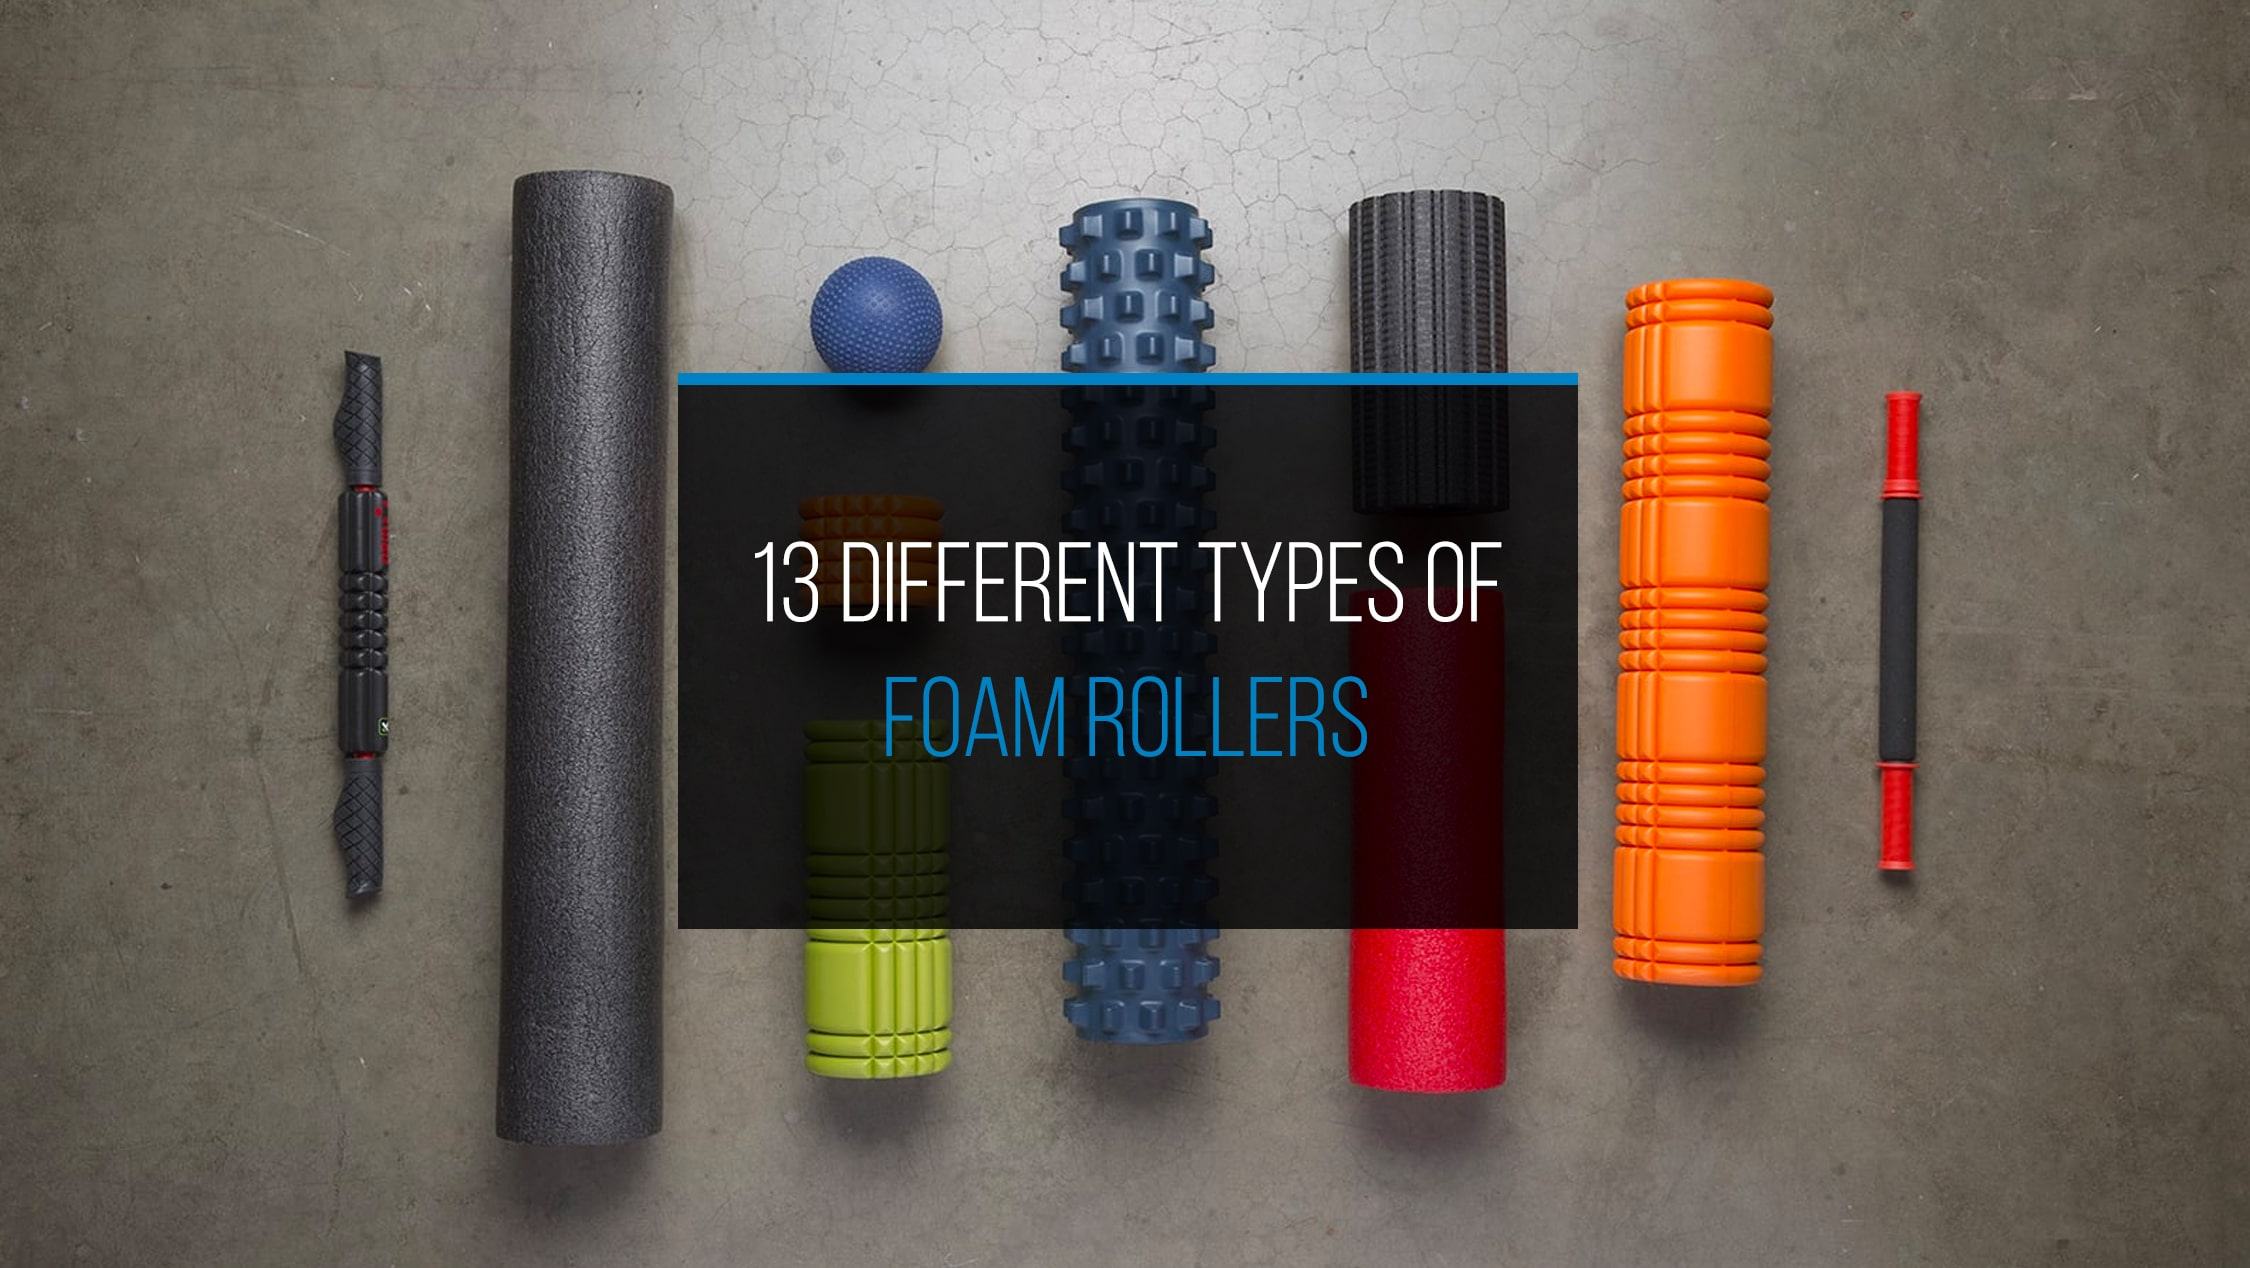 13 Different Types of Foam Rollers